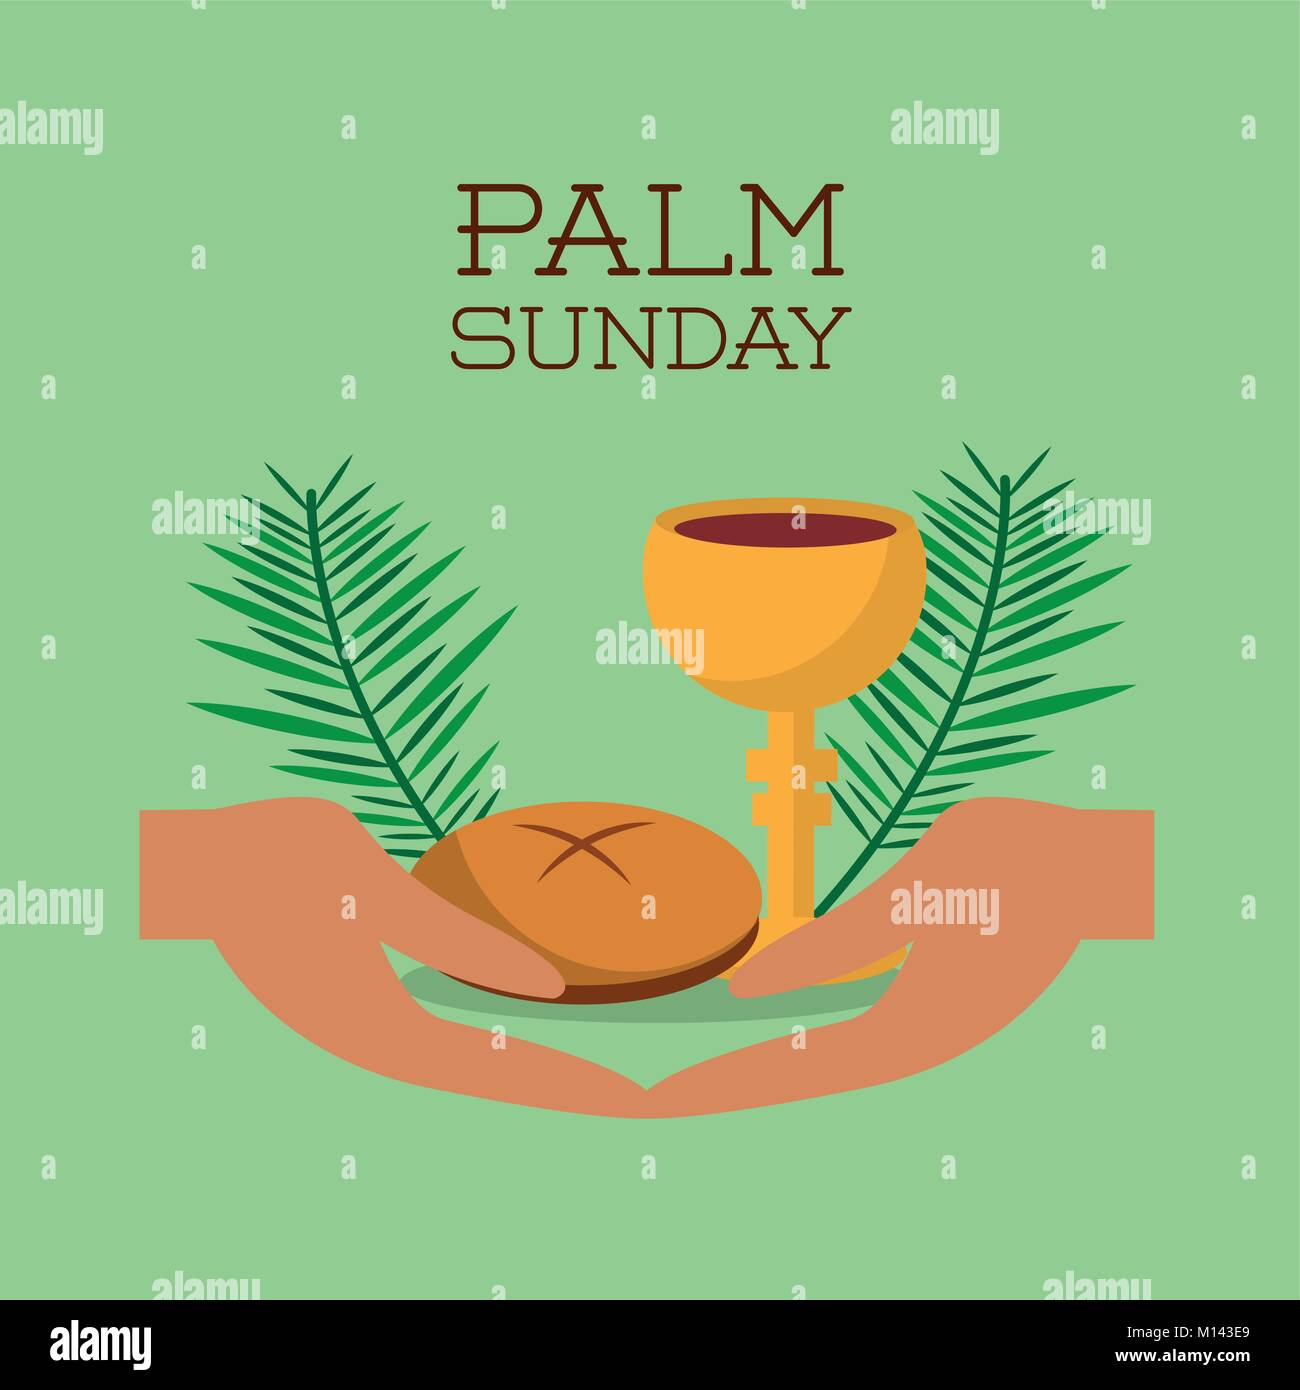 palm sunday hands bread and cup green background Stock Vector